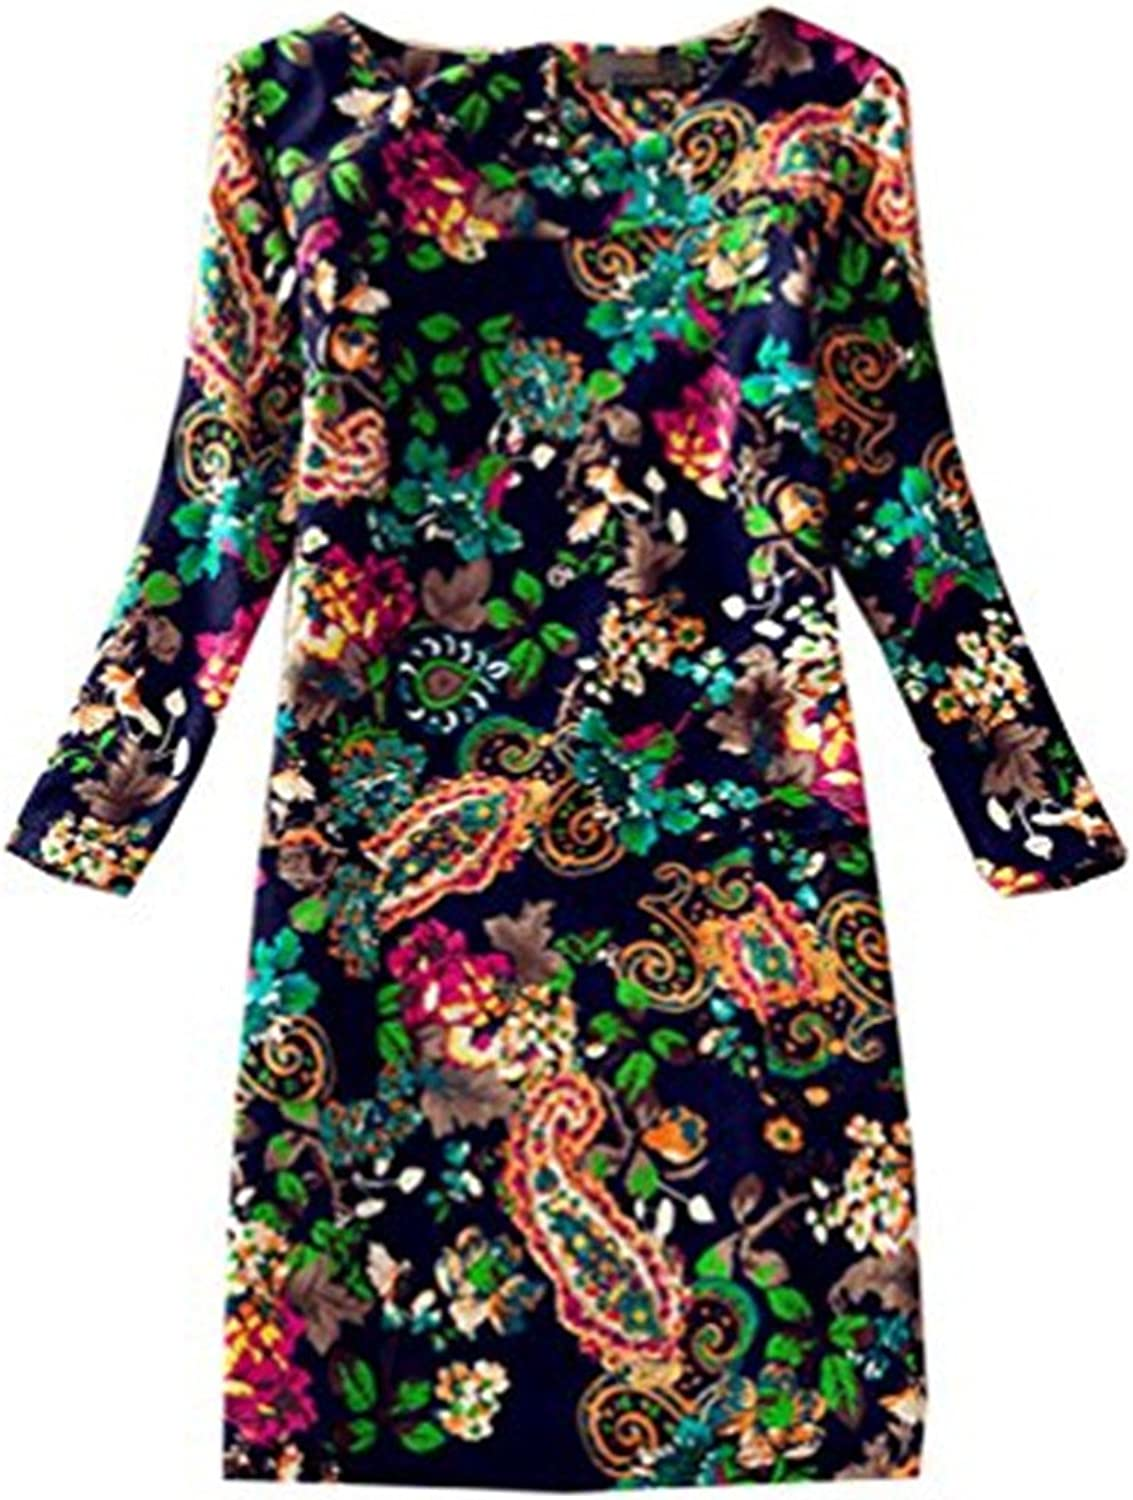 Daysoft Women Vintage Autumn Loose Floral Print Long Sleeve Aline Tunic Shift Casual Dress